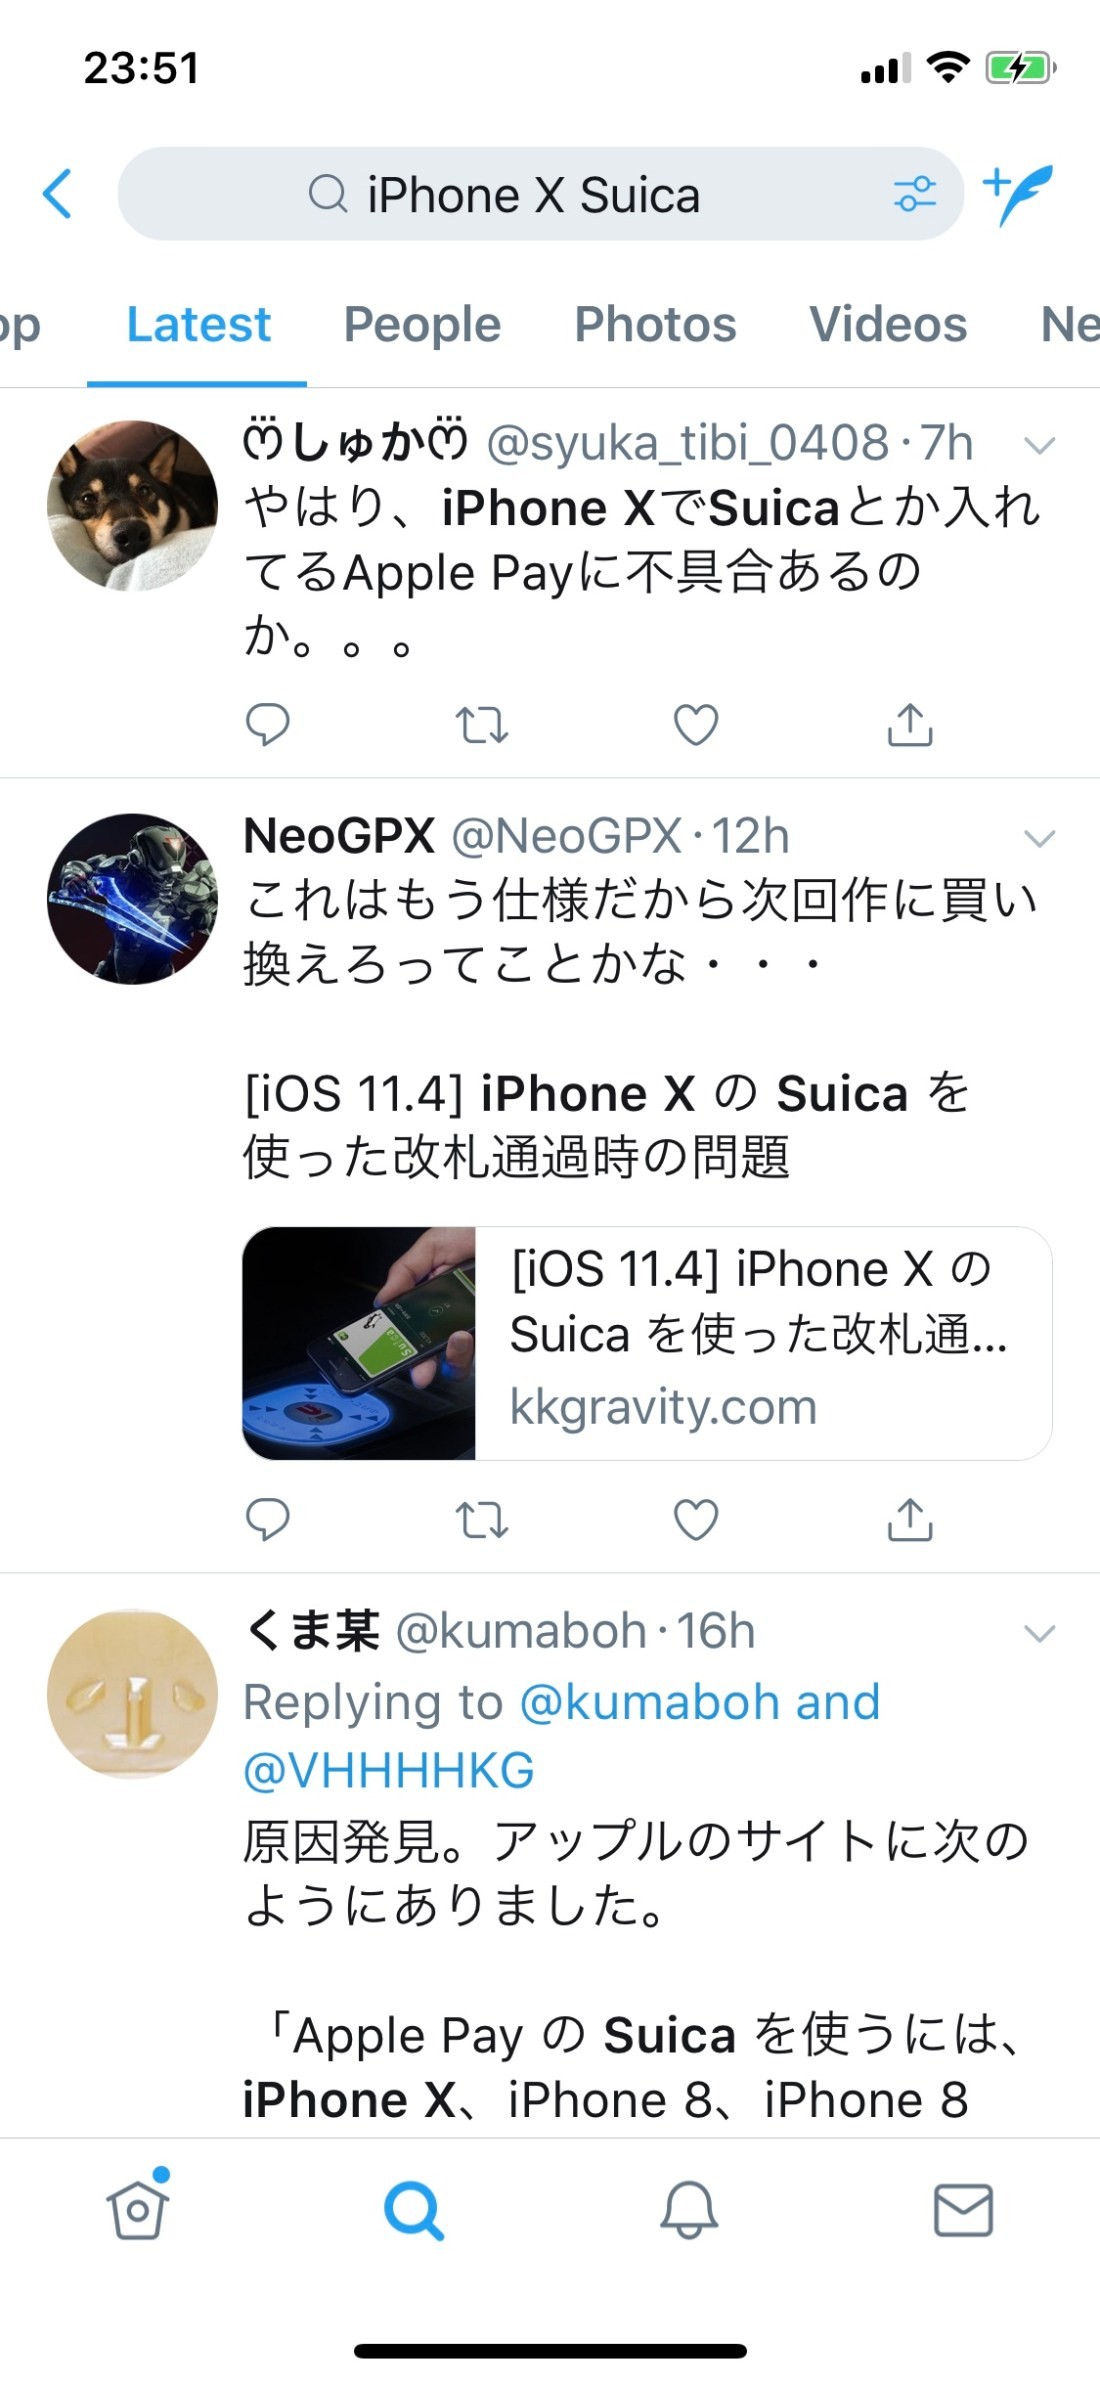 Japanese complaints of iPhone X Suica performance